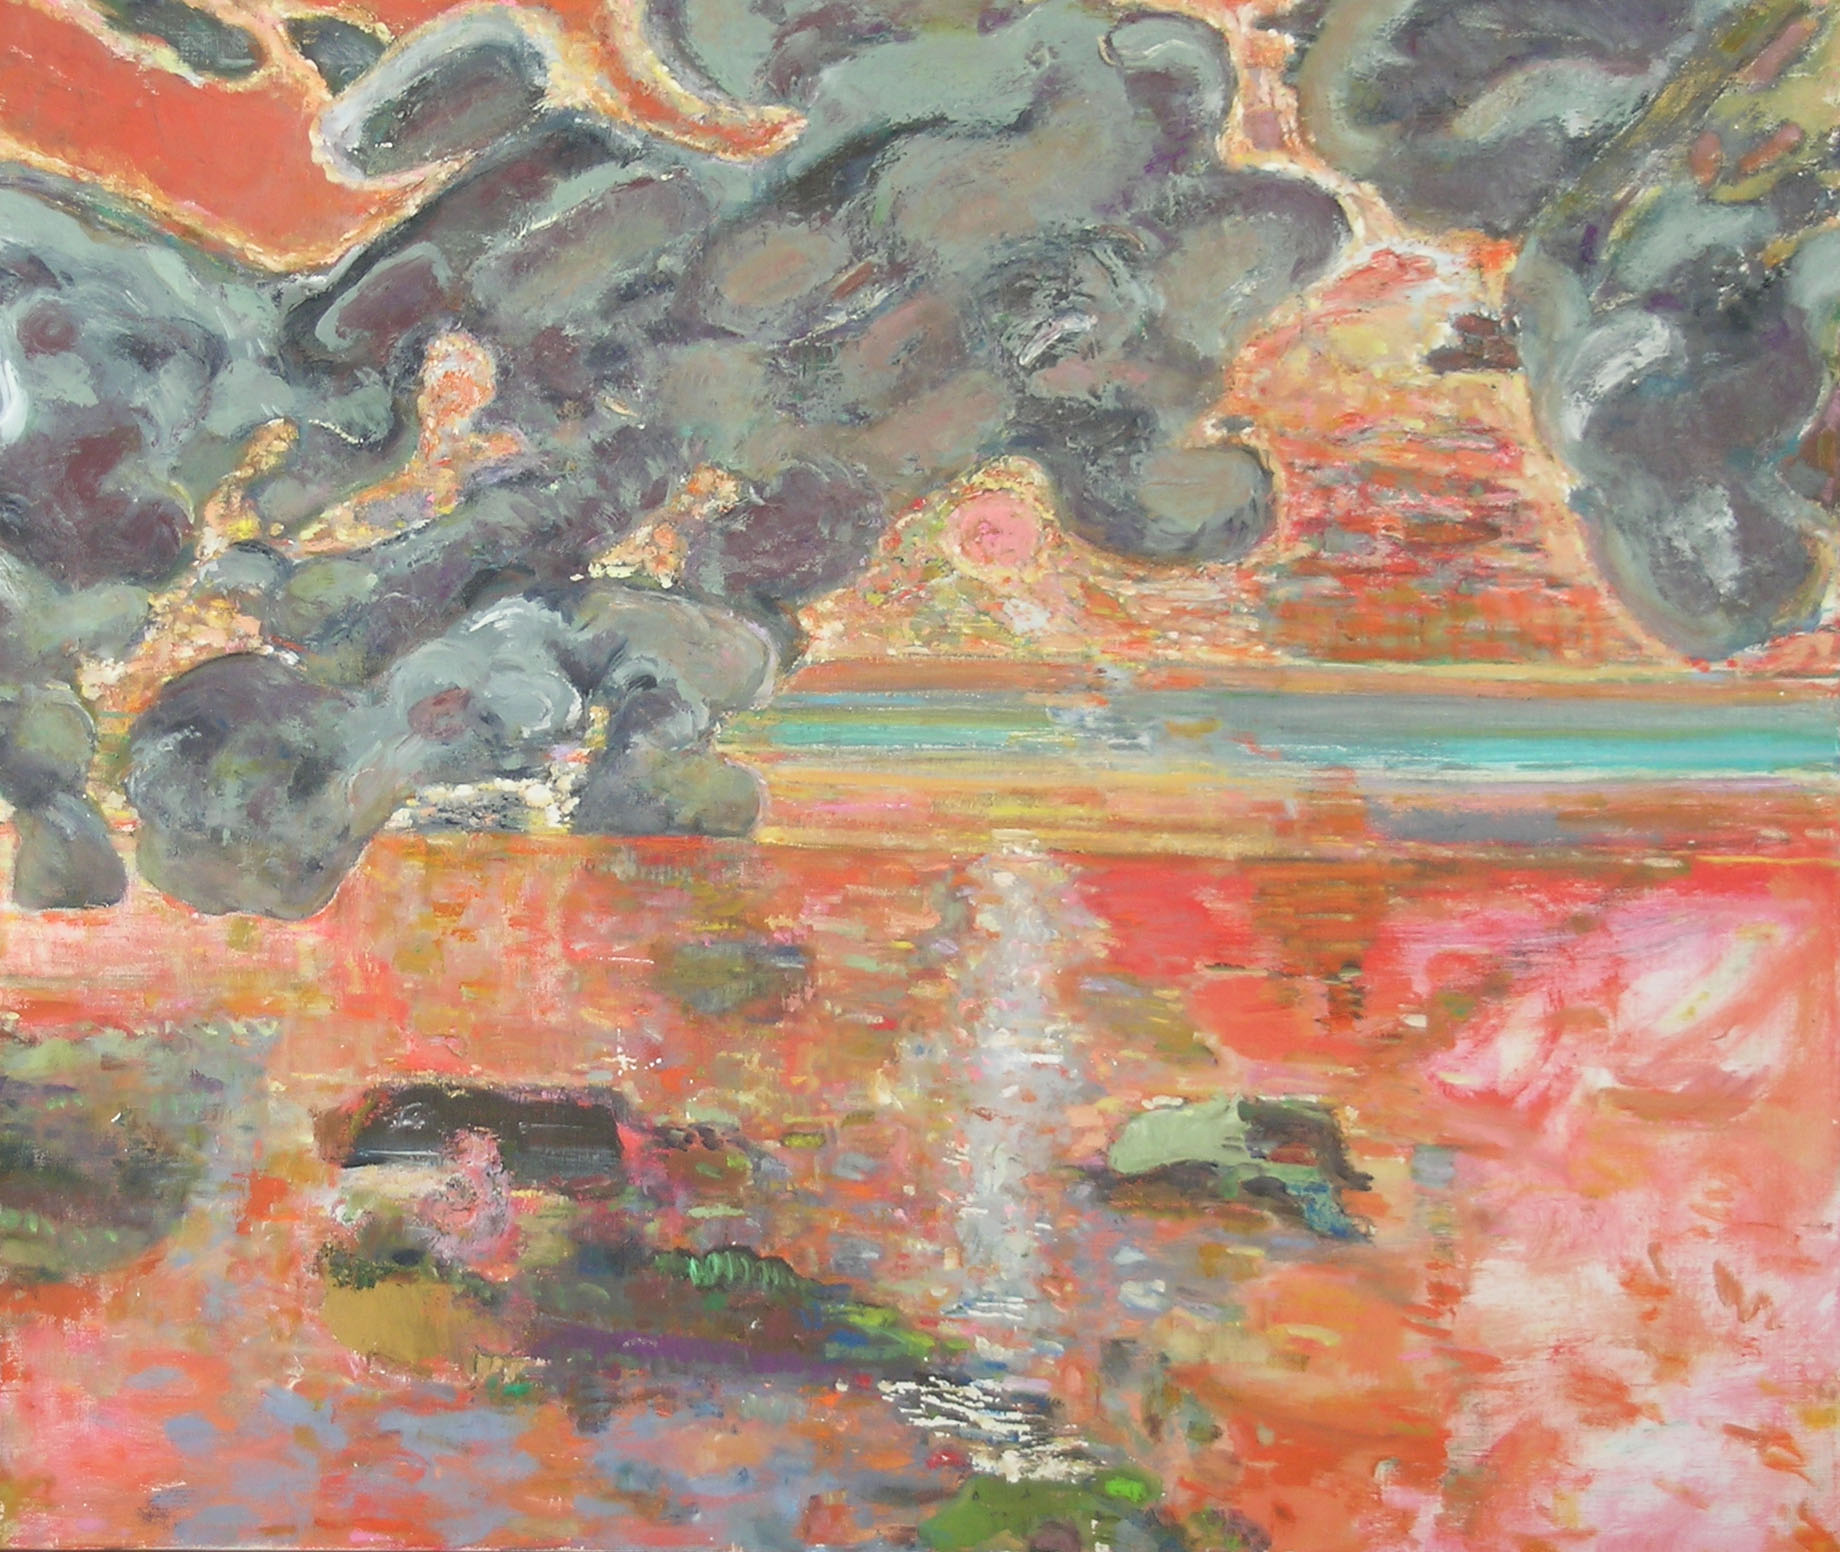 Heavy Clouds, 2005 oil on canvas, 34 x 40 inches